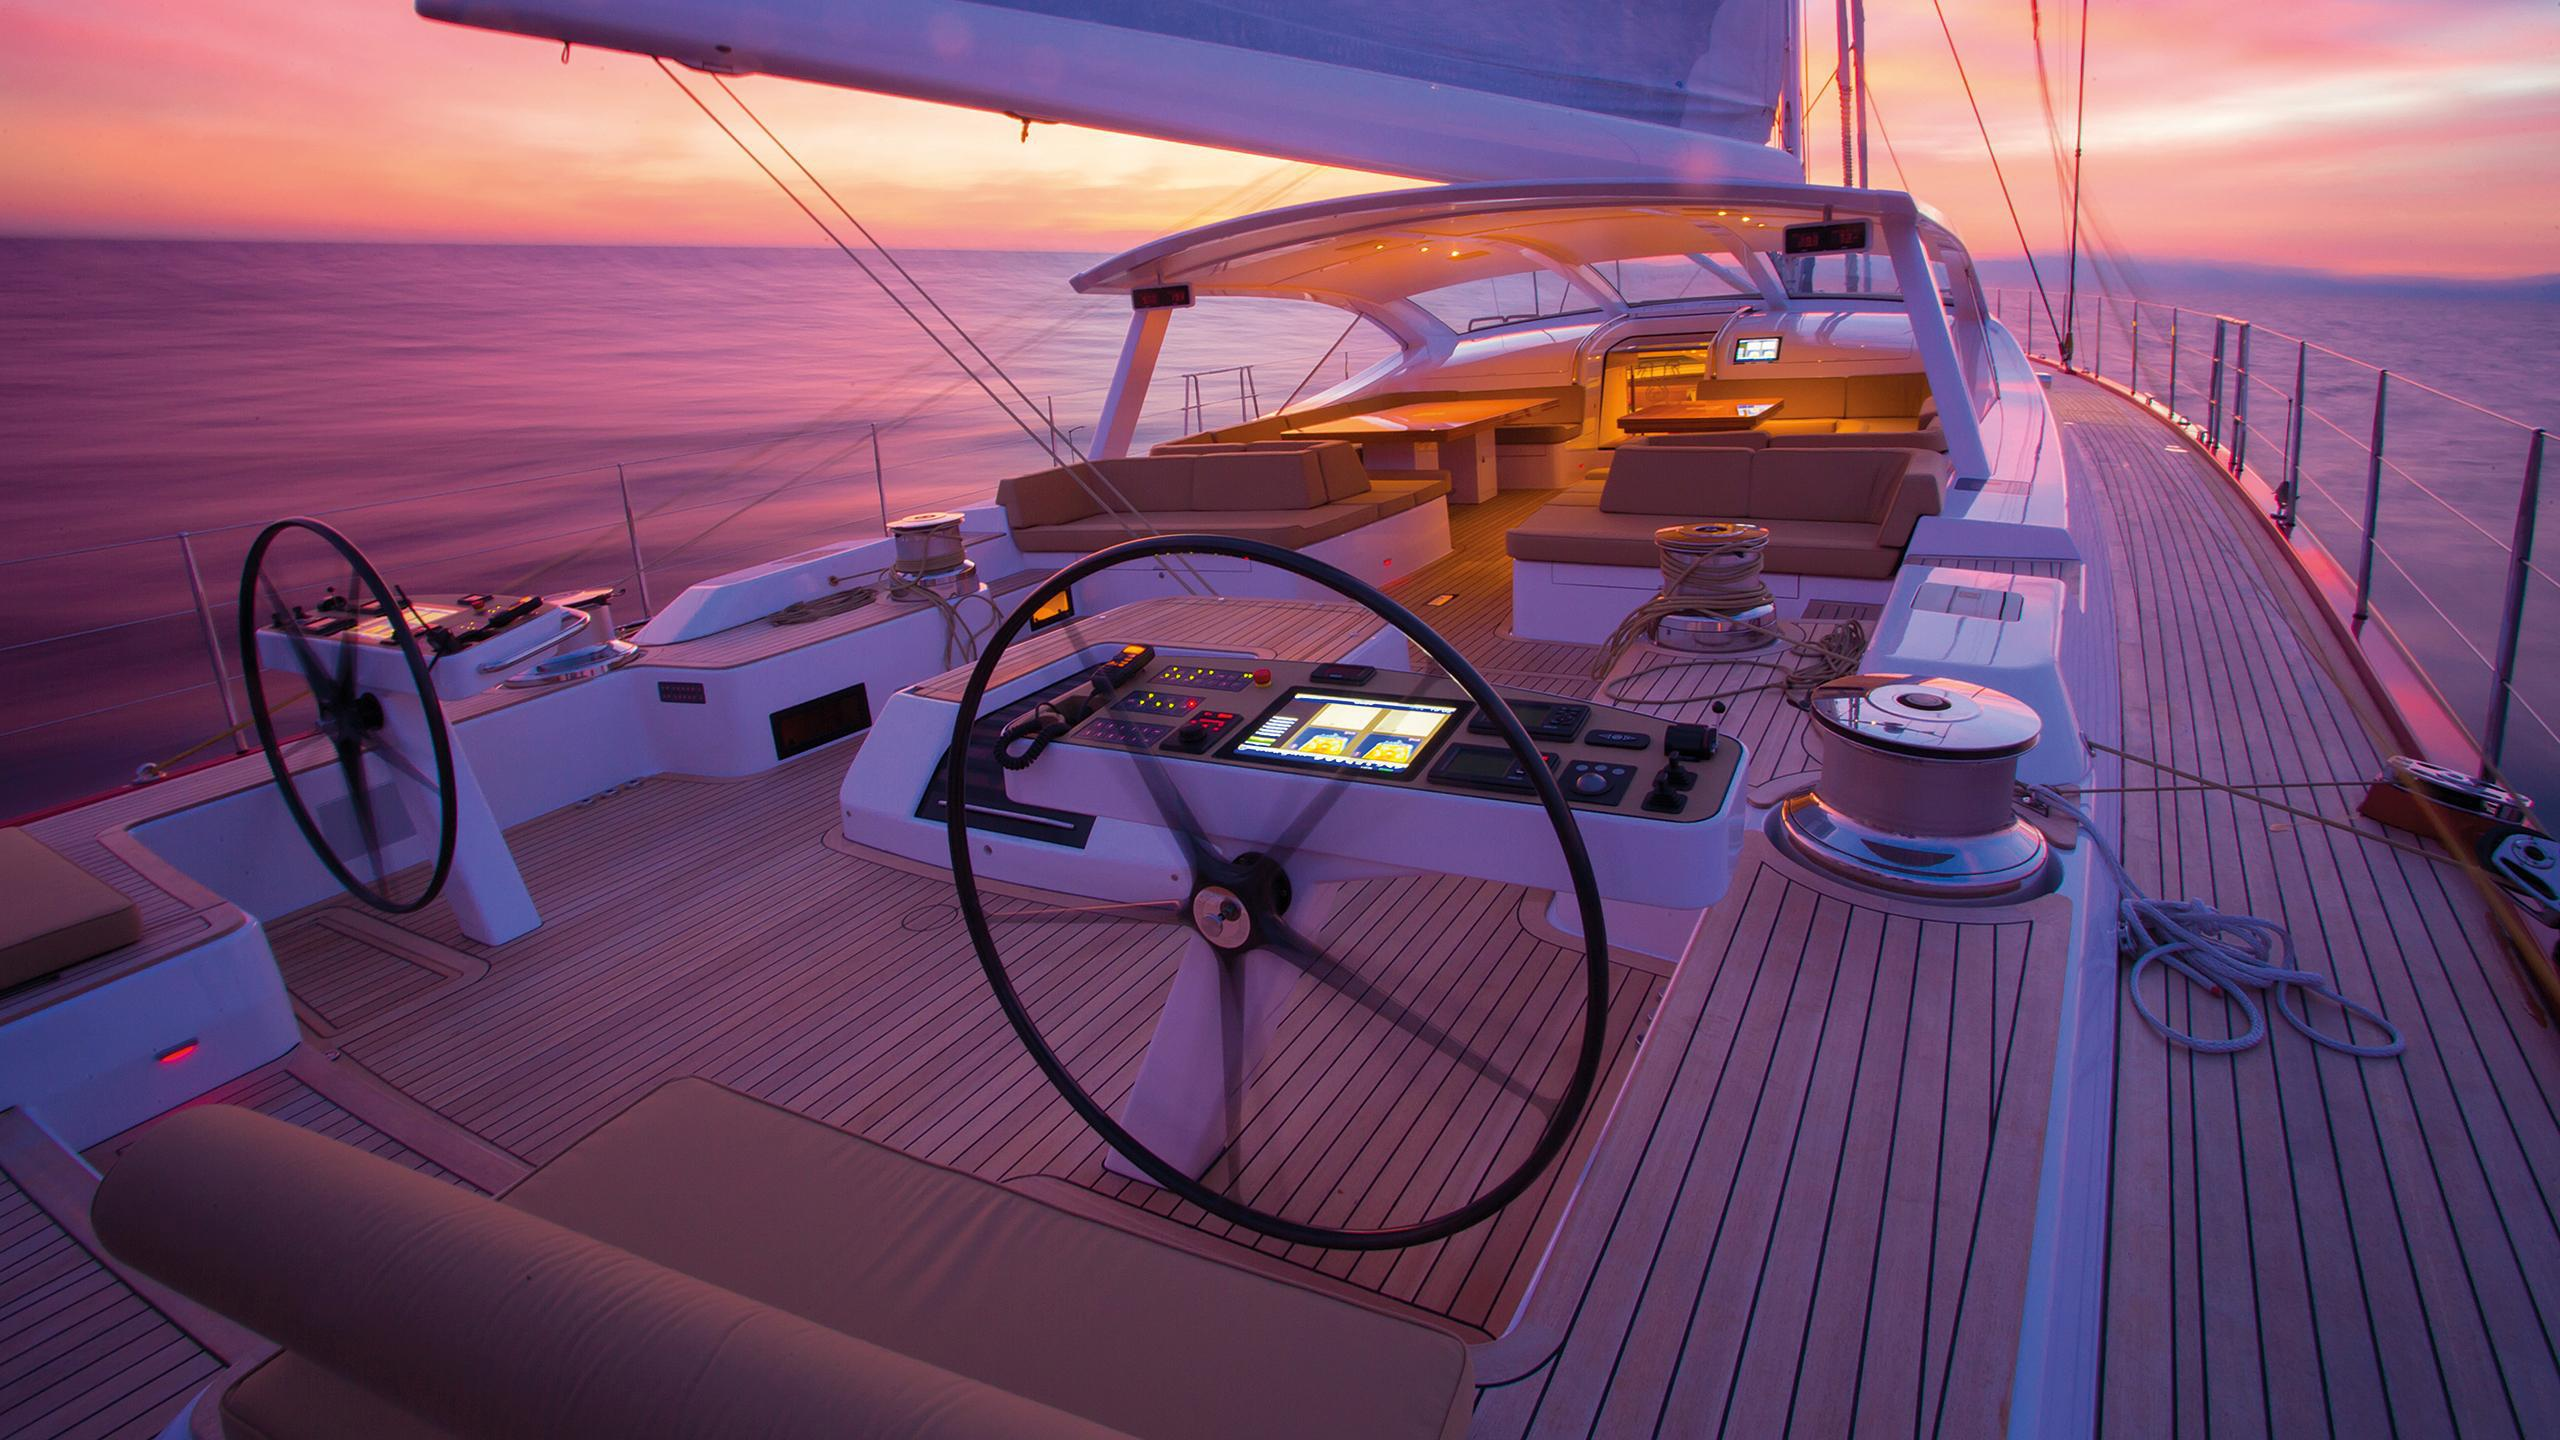 doryan-sailing-yacht-2015-35m-deck-by-night